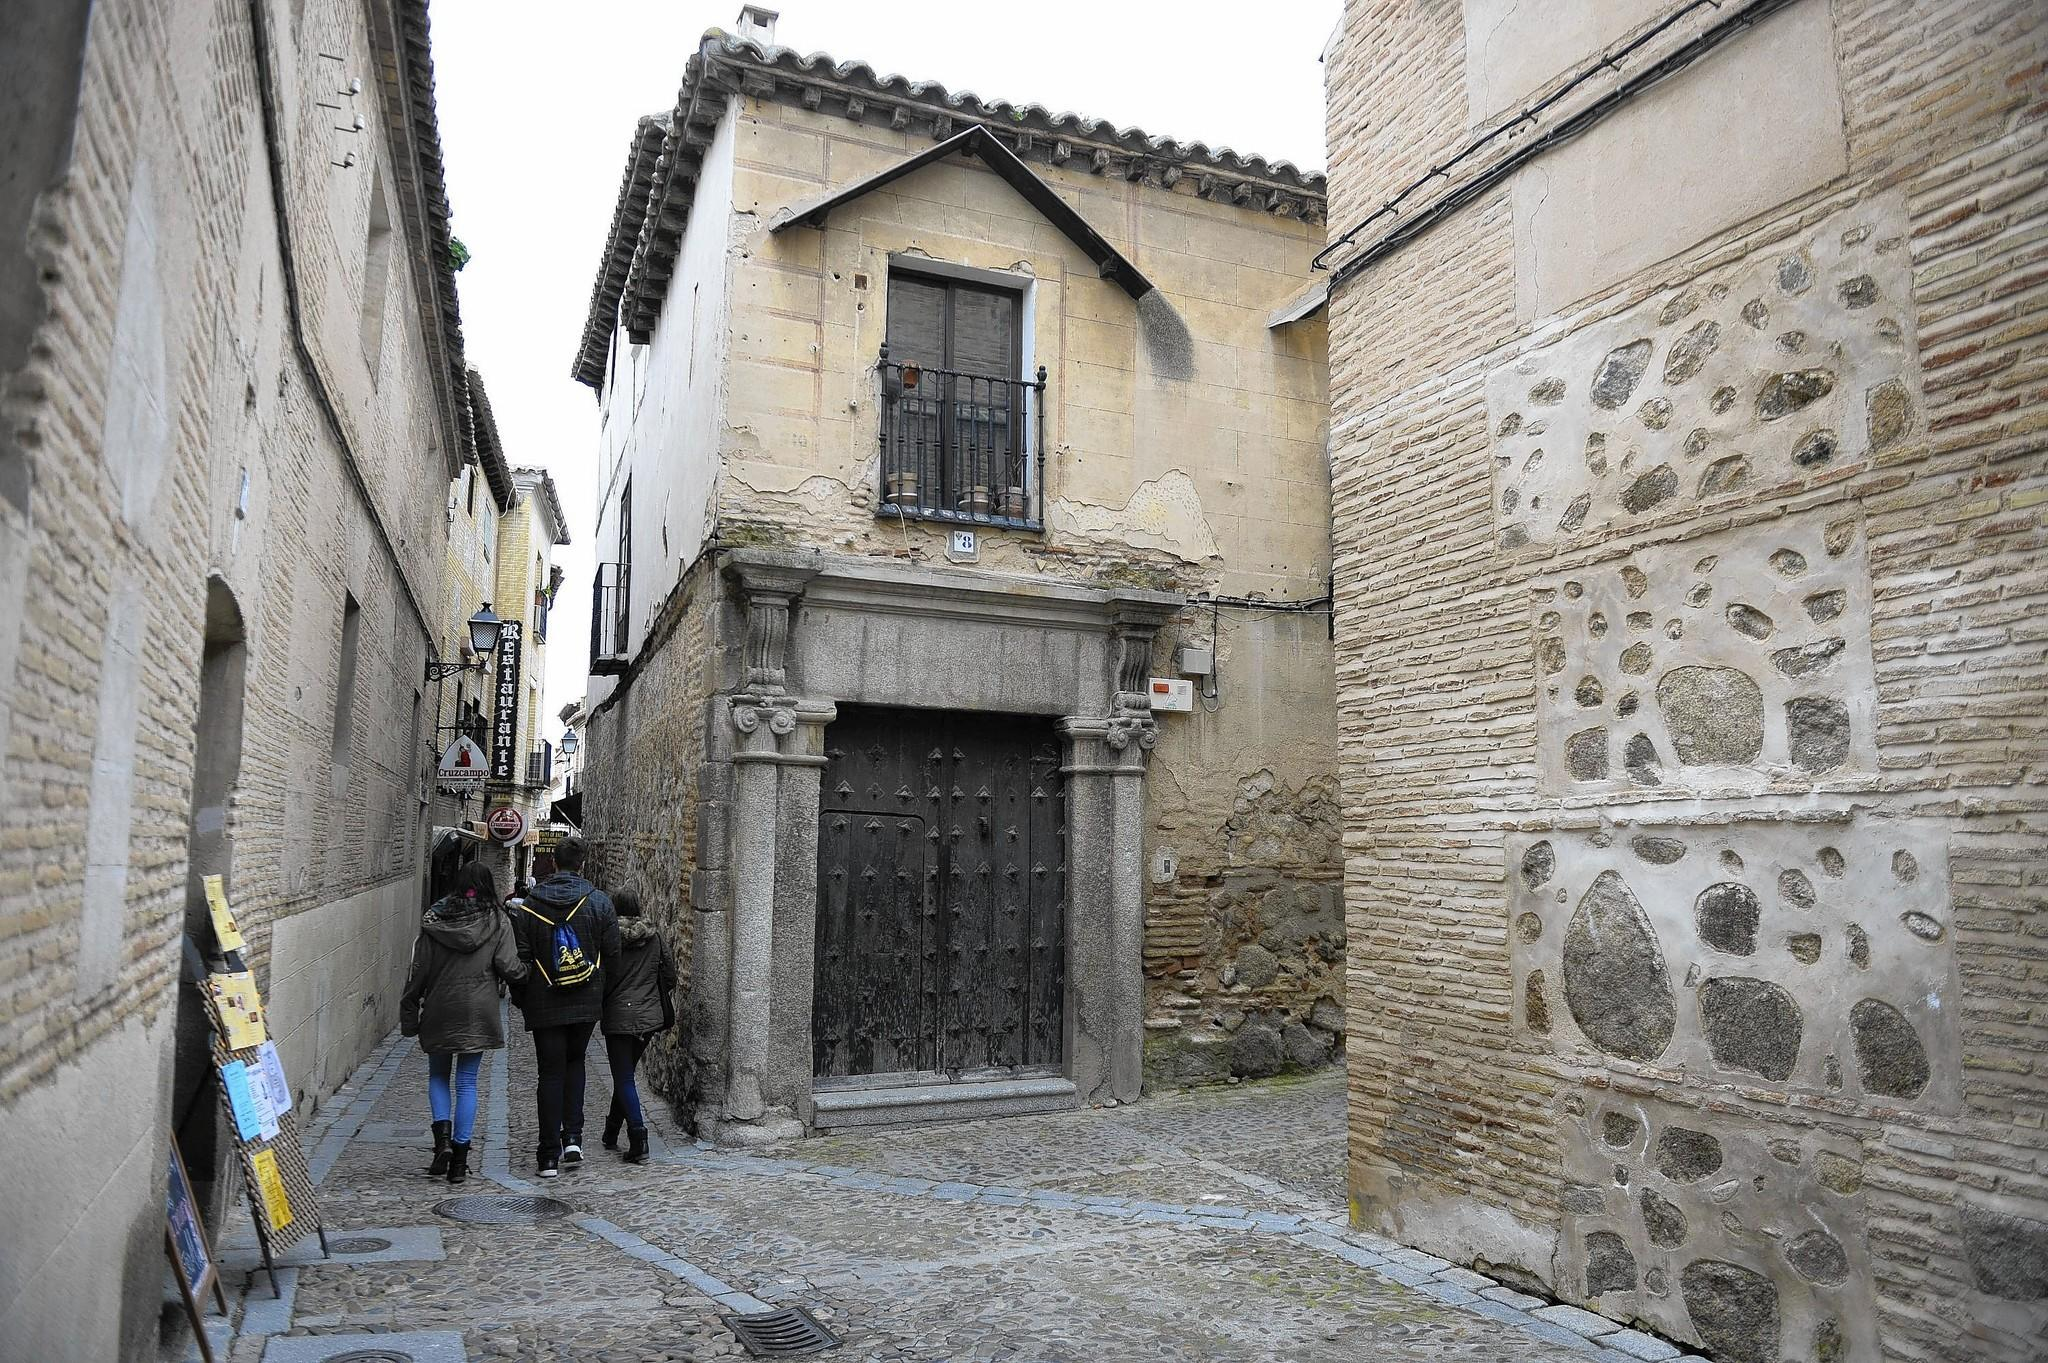 The walled city of Toledo was one of the great centers of Jewish culture on the Iberian Peninsula. More than half a millennium later, the Jews who flock to its two medieval synagogues are tourists, not worshipers.